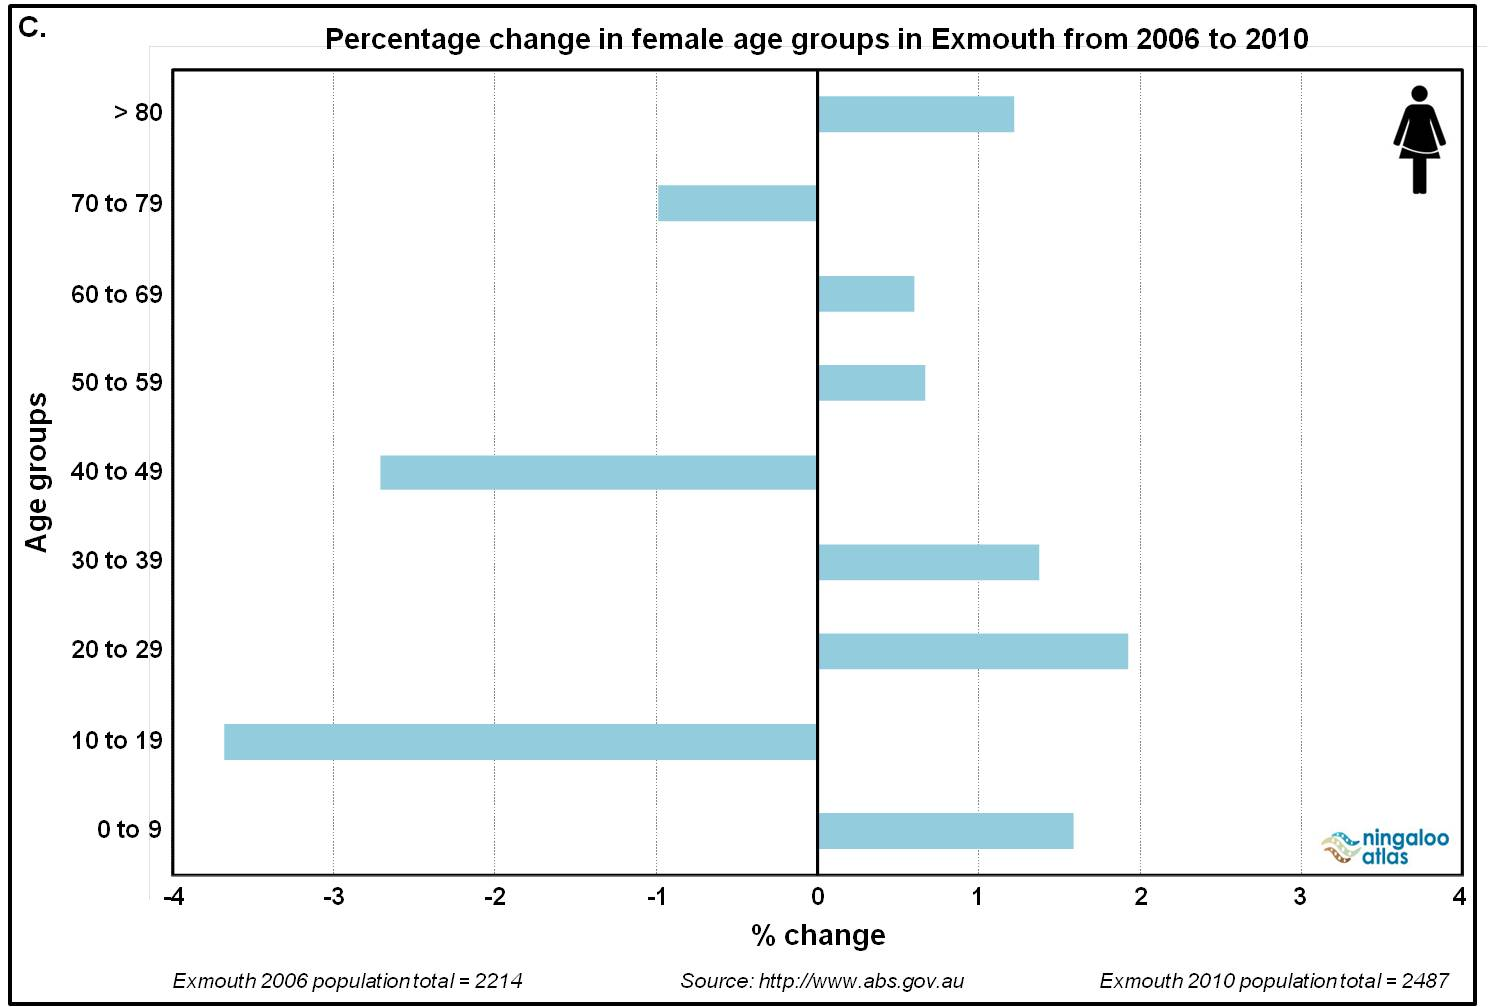 Exmouth female age group change